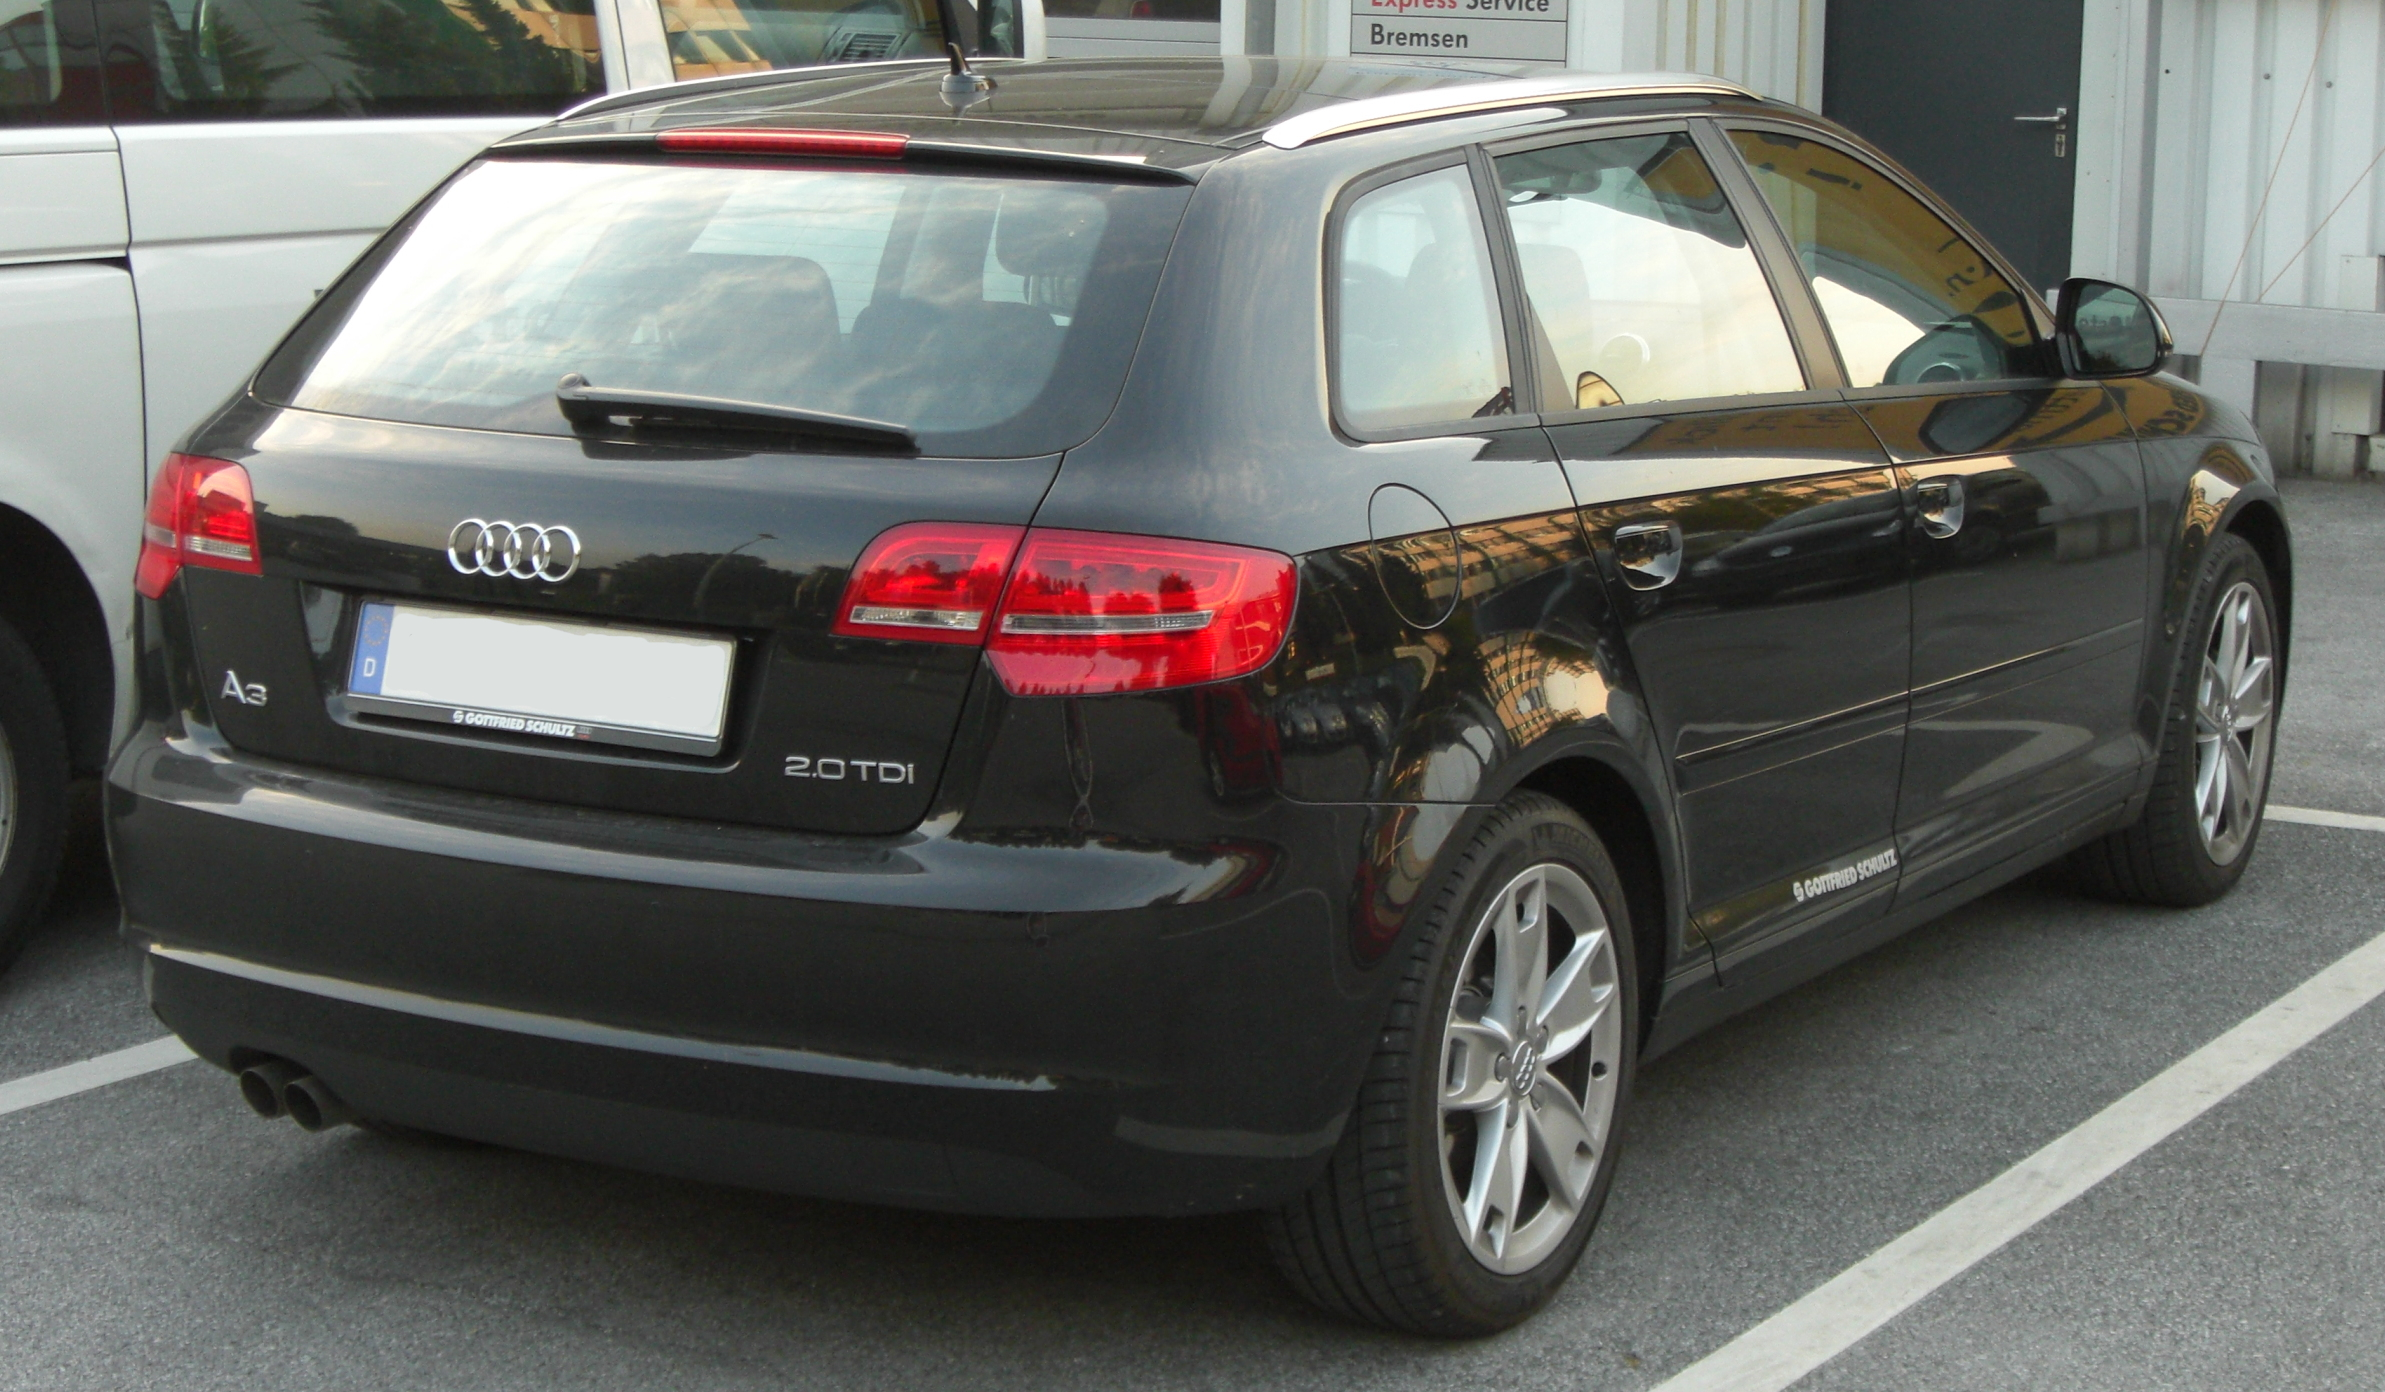 audi a3 sportback tdi photos 12 on better parts ltd. Black Bedroom Furniture Sets. Home Design Ideas